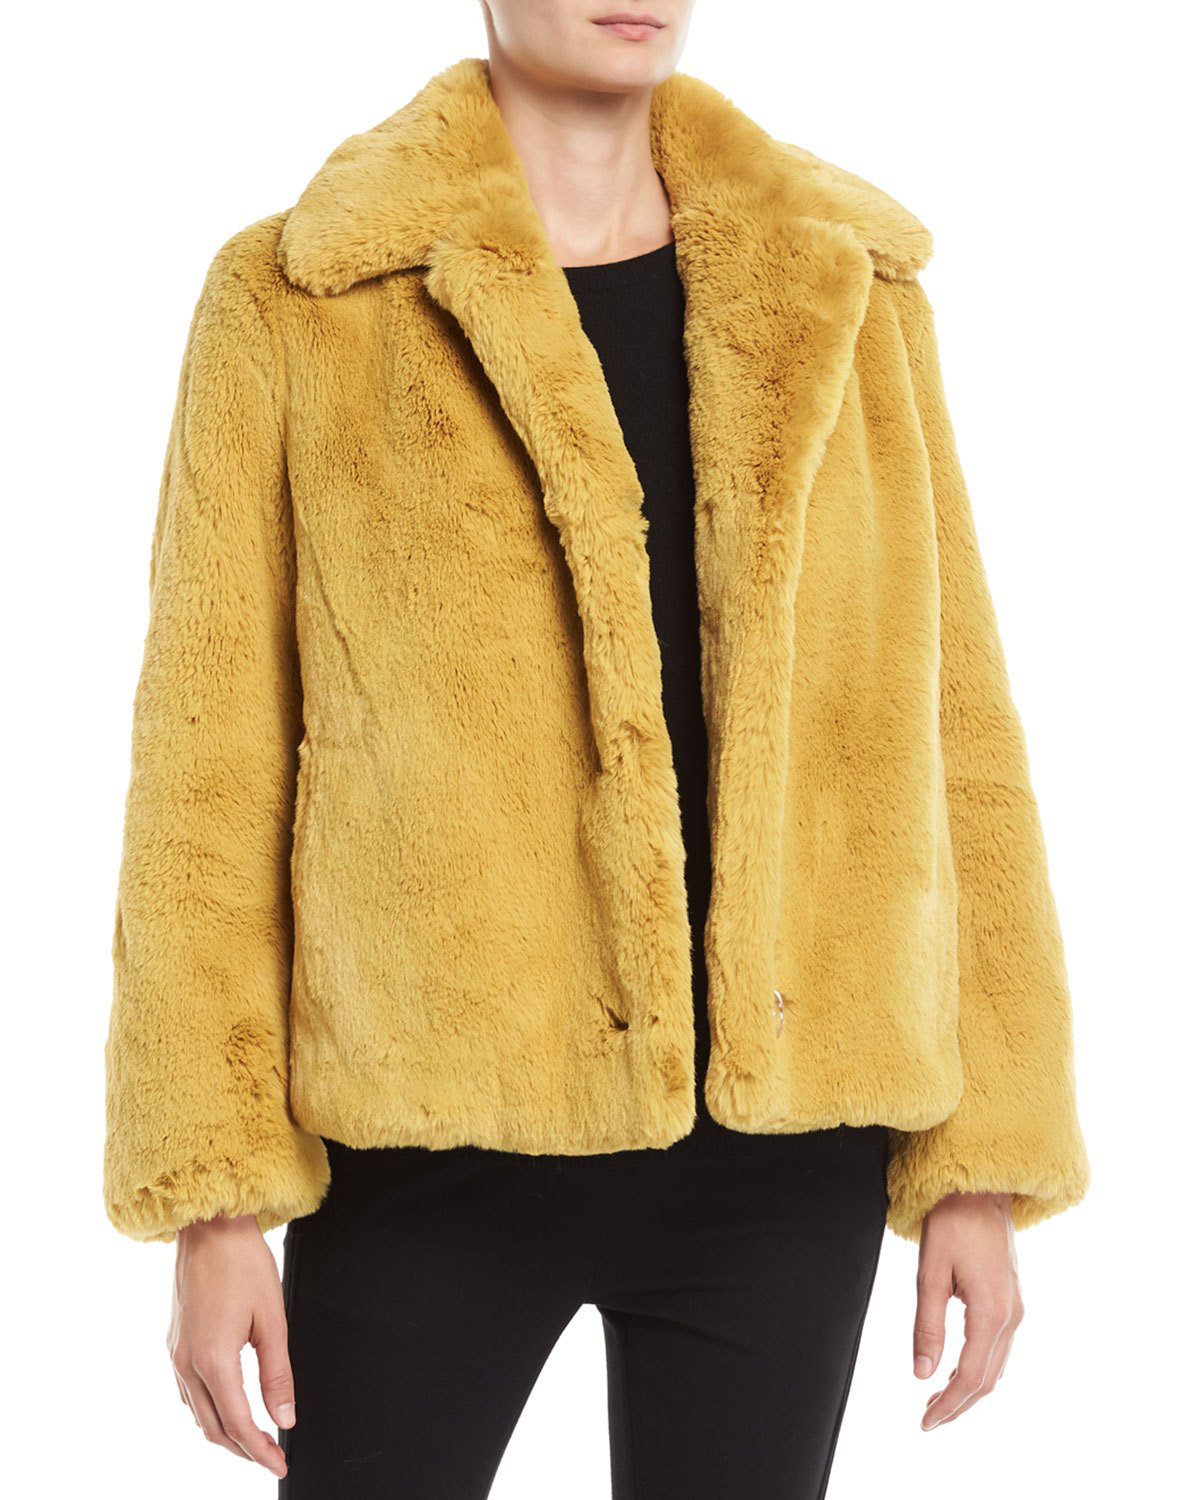 e826adc44ae Burberry Faux Fur Single-Breasted Jacket In Yellow